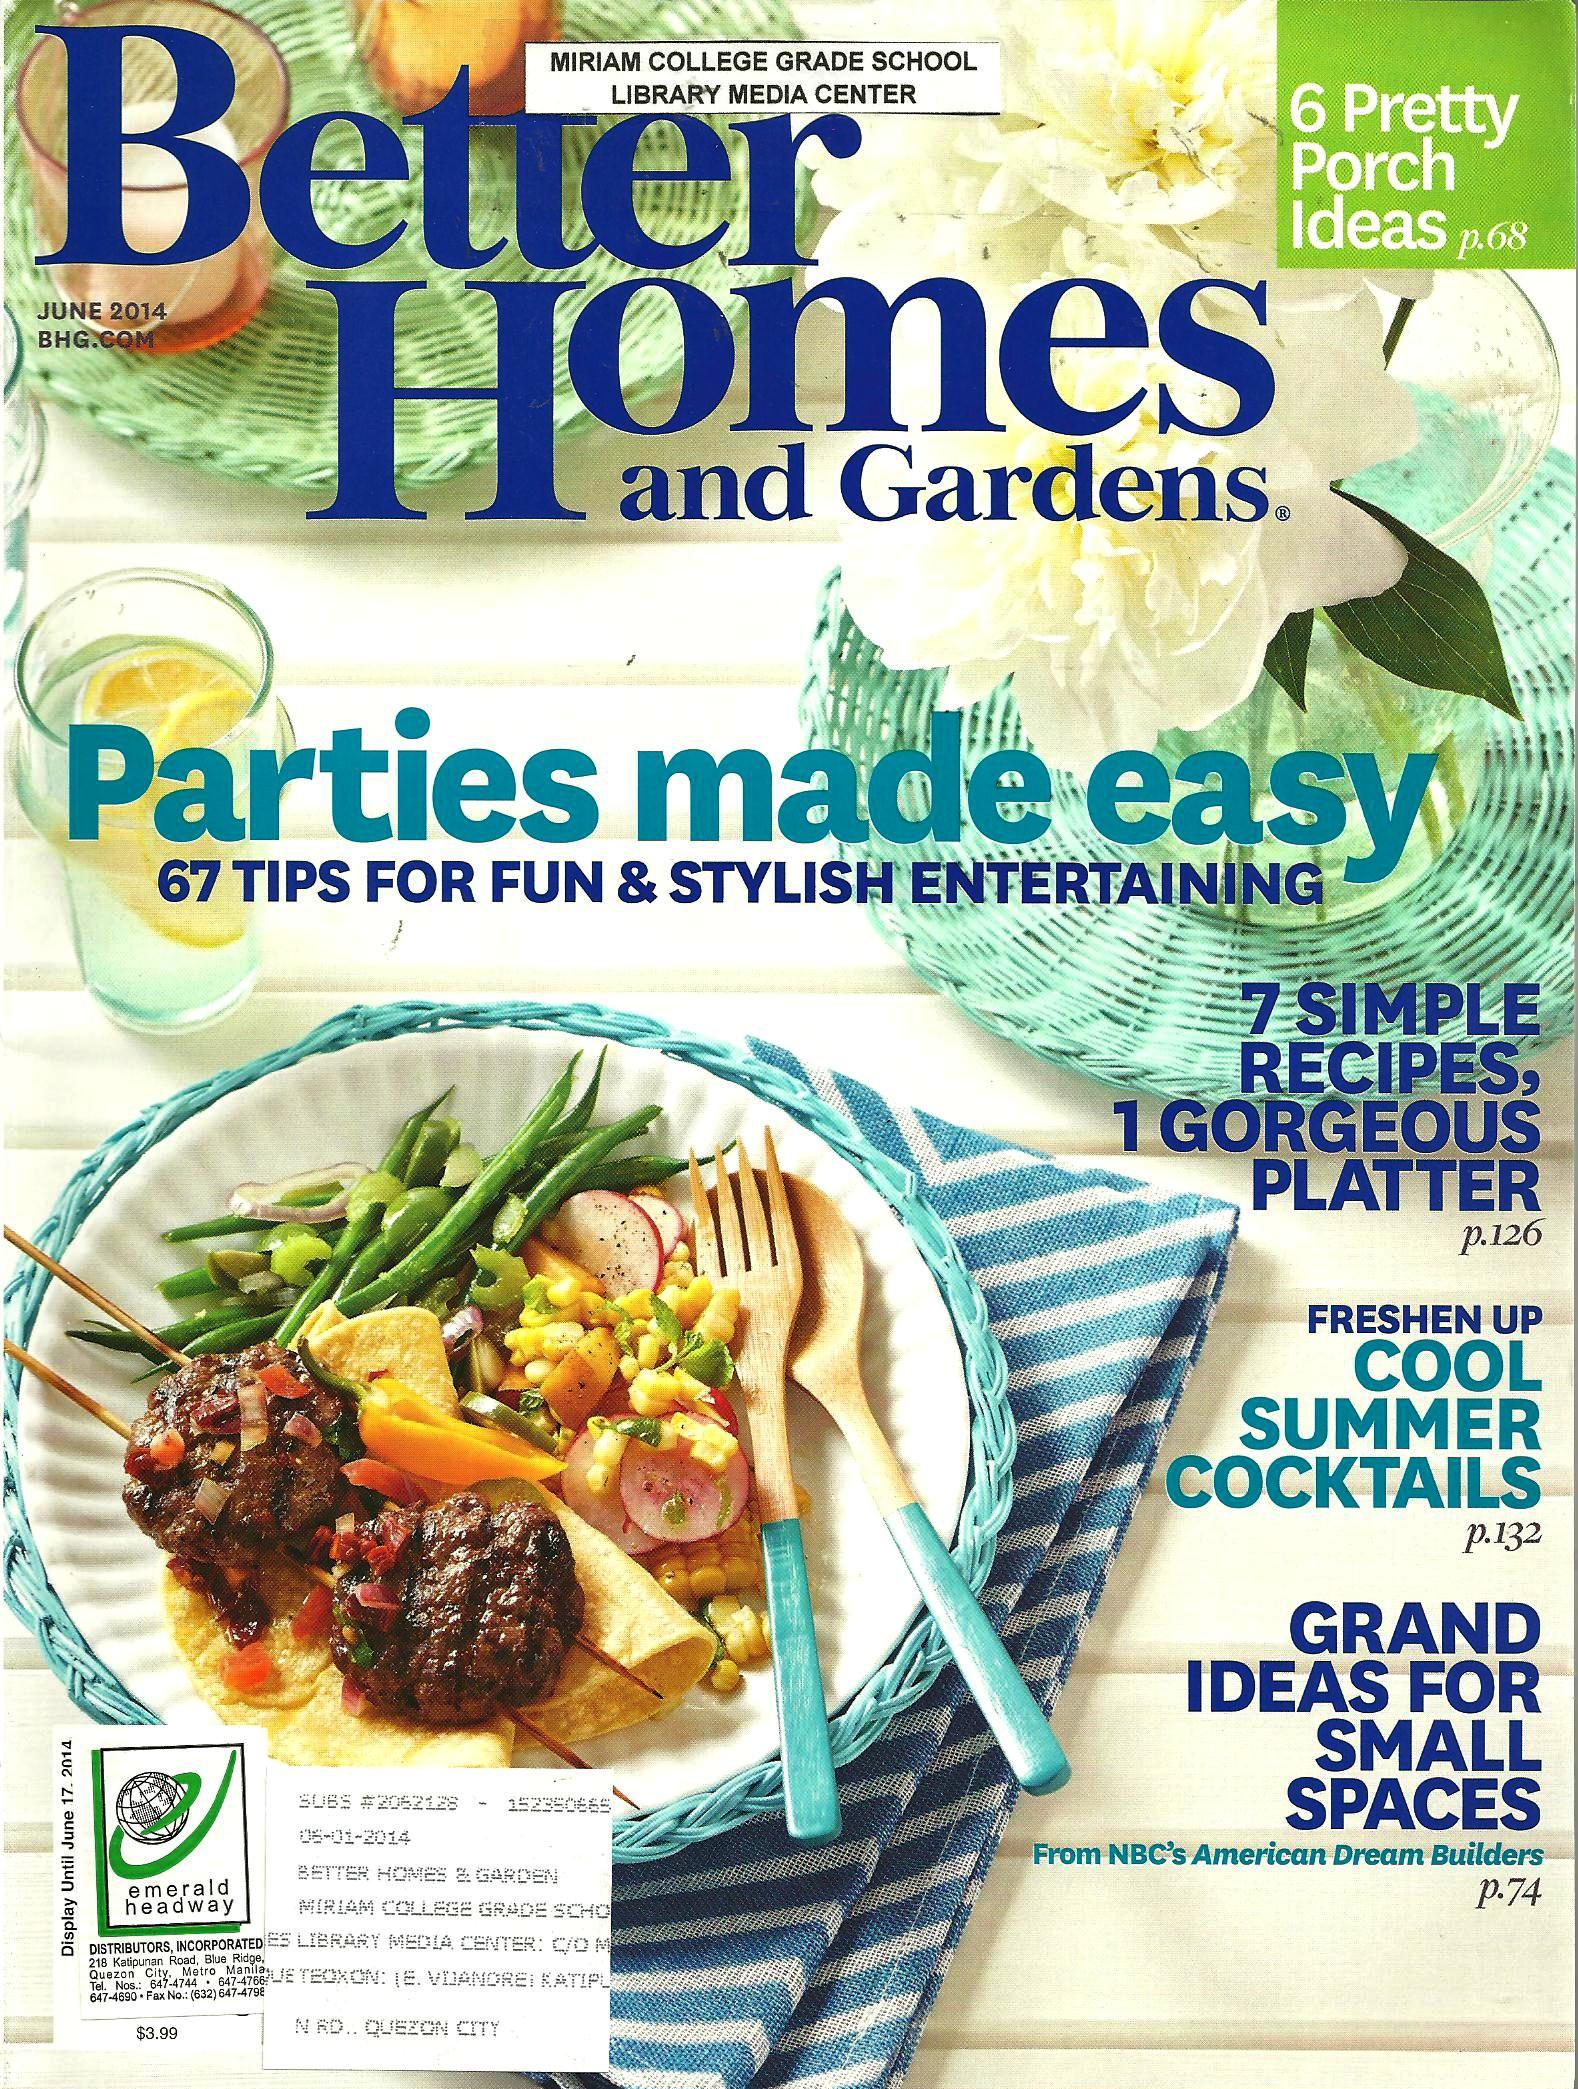 better homes and gardens june 2014 volume 92 number 6 1